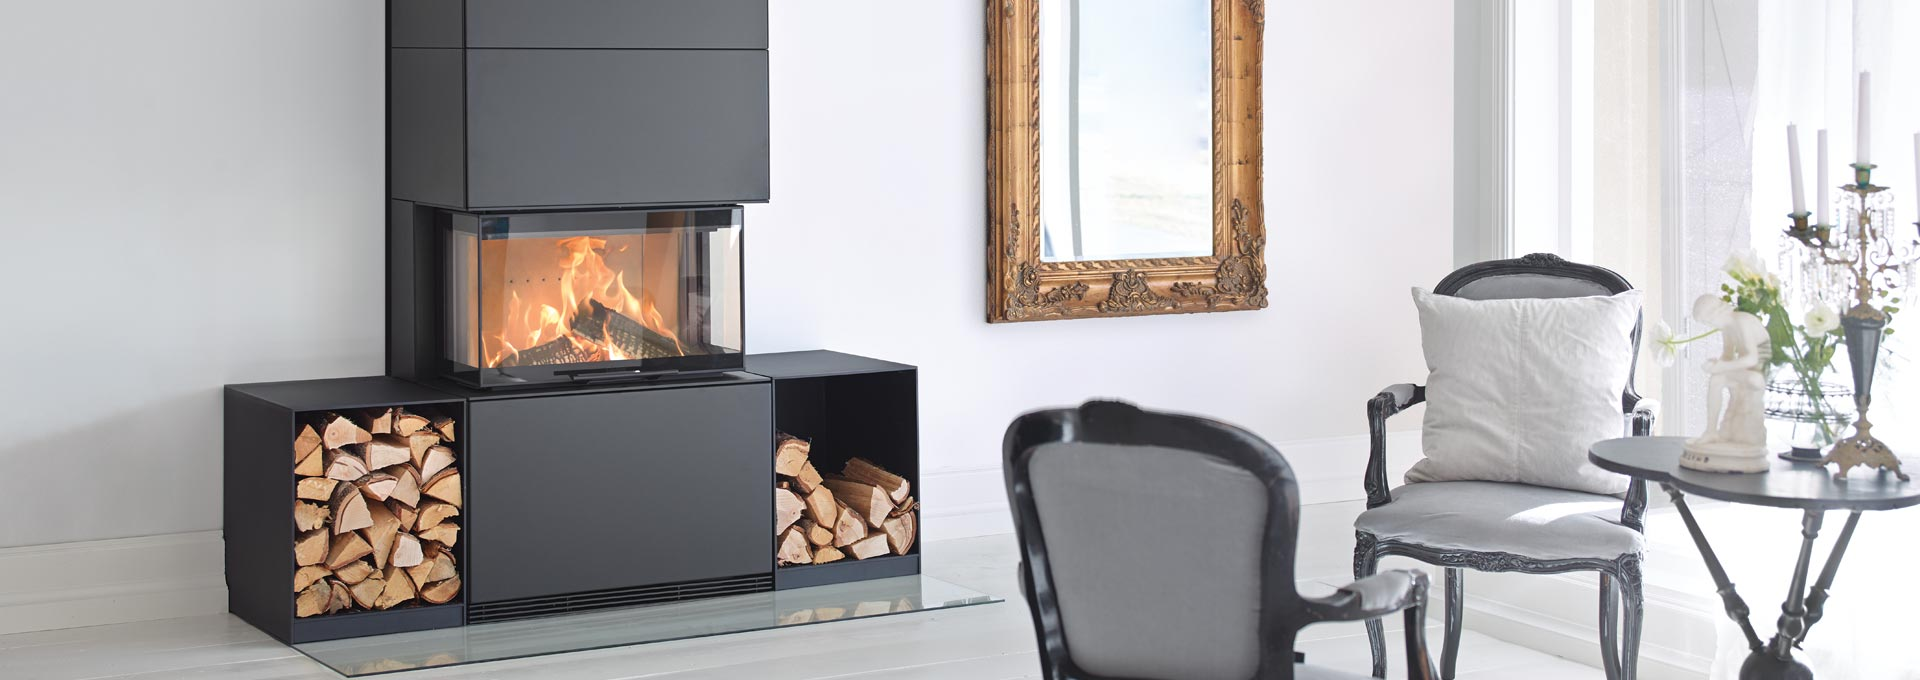 Contura Ri50 Freestanding Wood Fireplace – Regency Fireplace